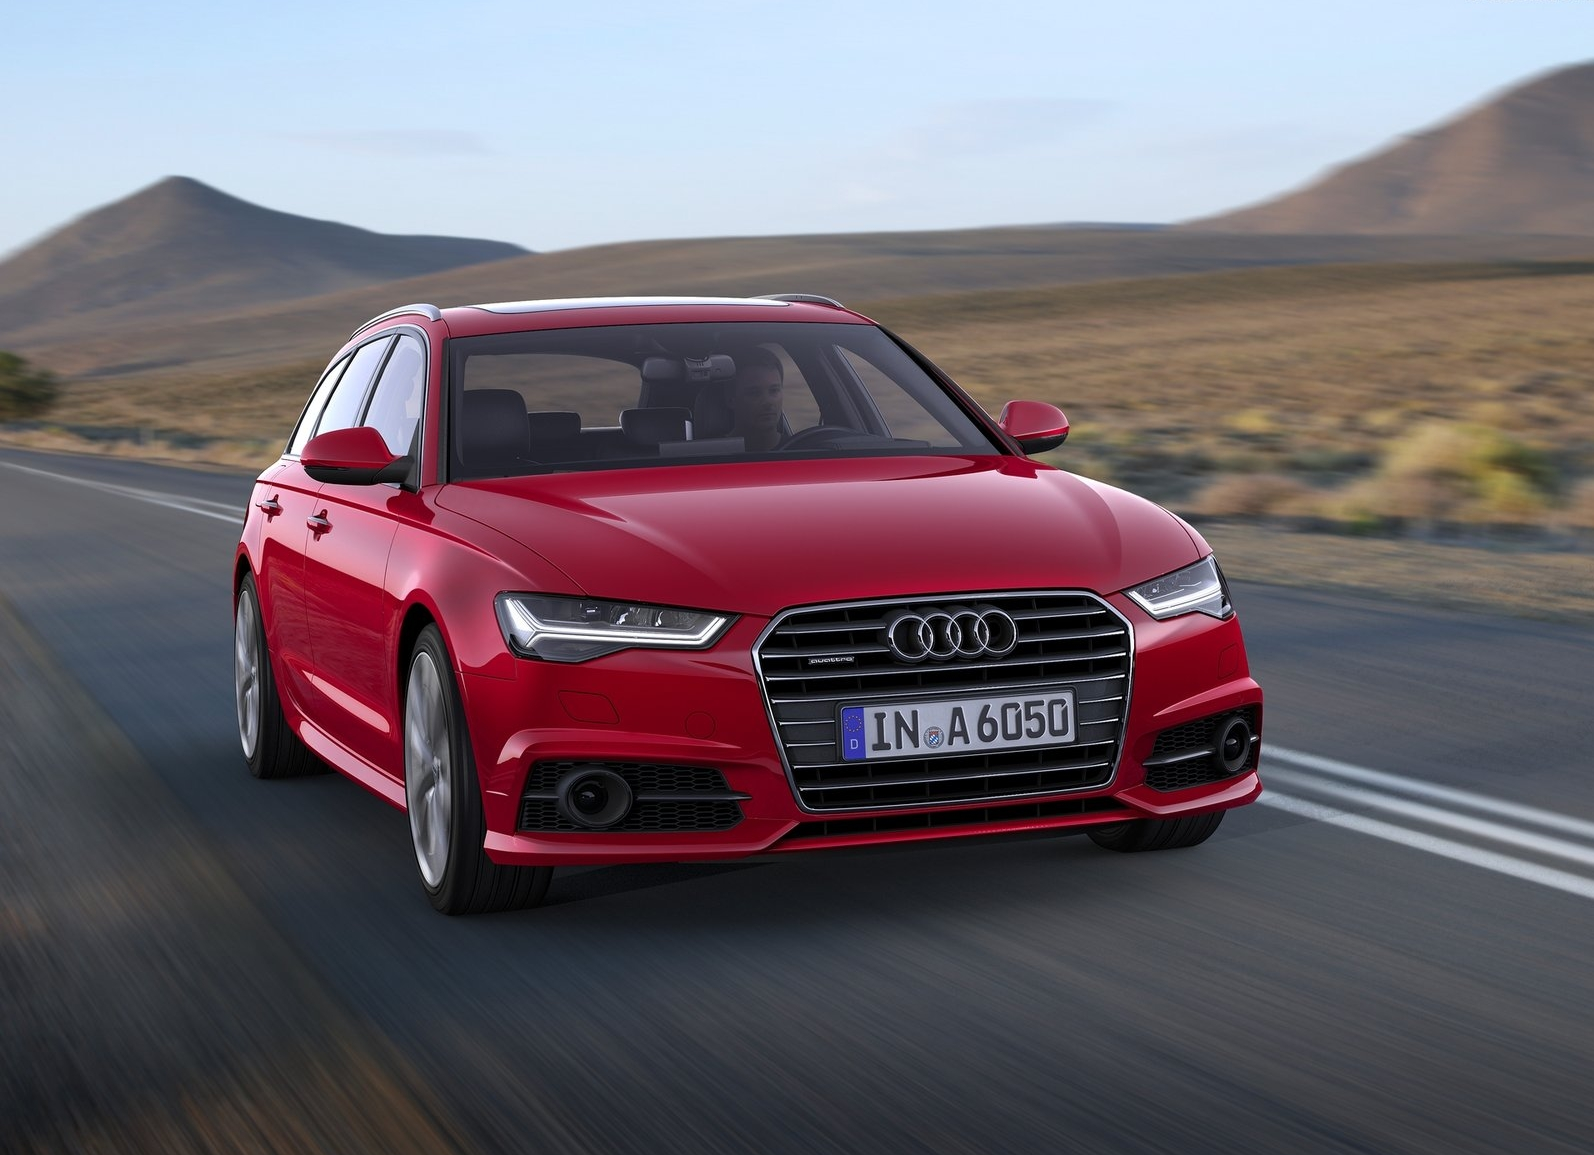 https://www.whatcar.lv/cars/Audi/A6 Avant/a0dffb3d9a76bc45fb59489cd99ec20d.jpg